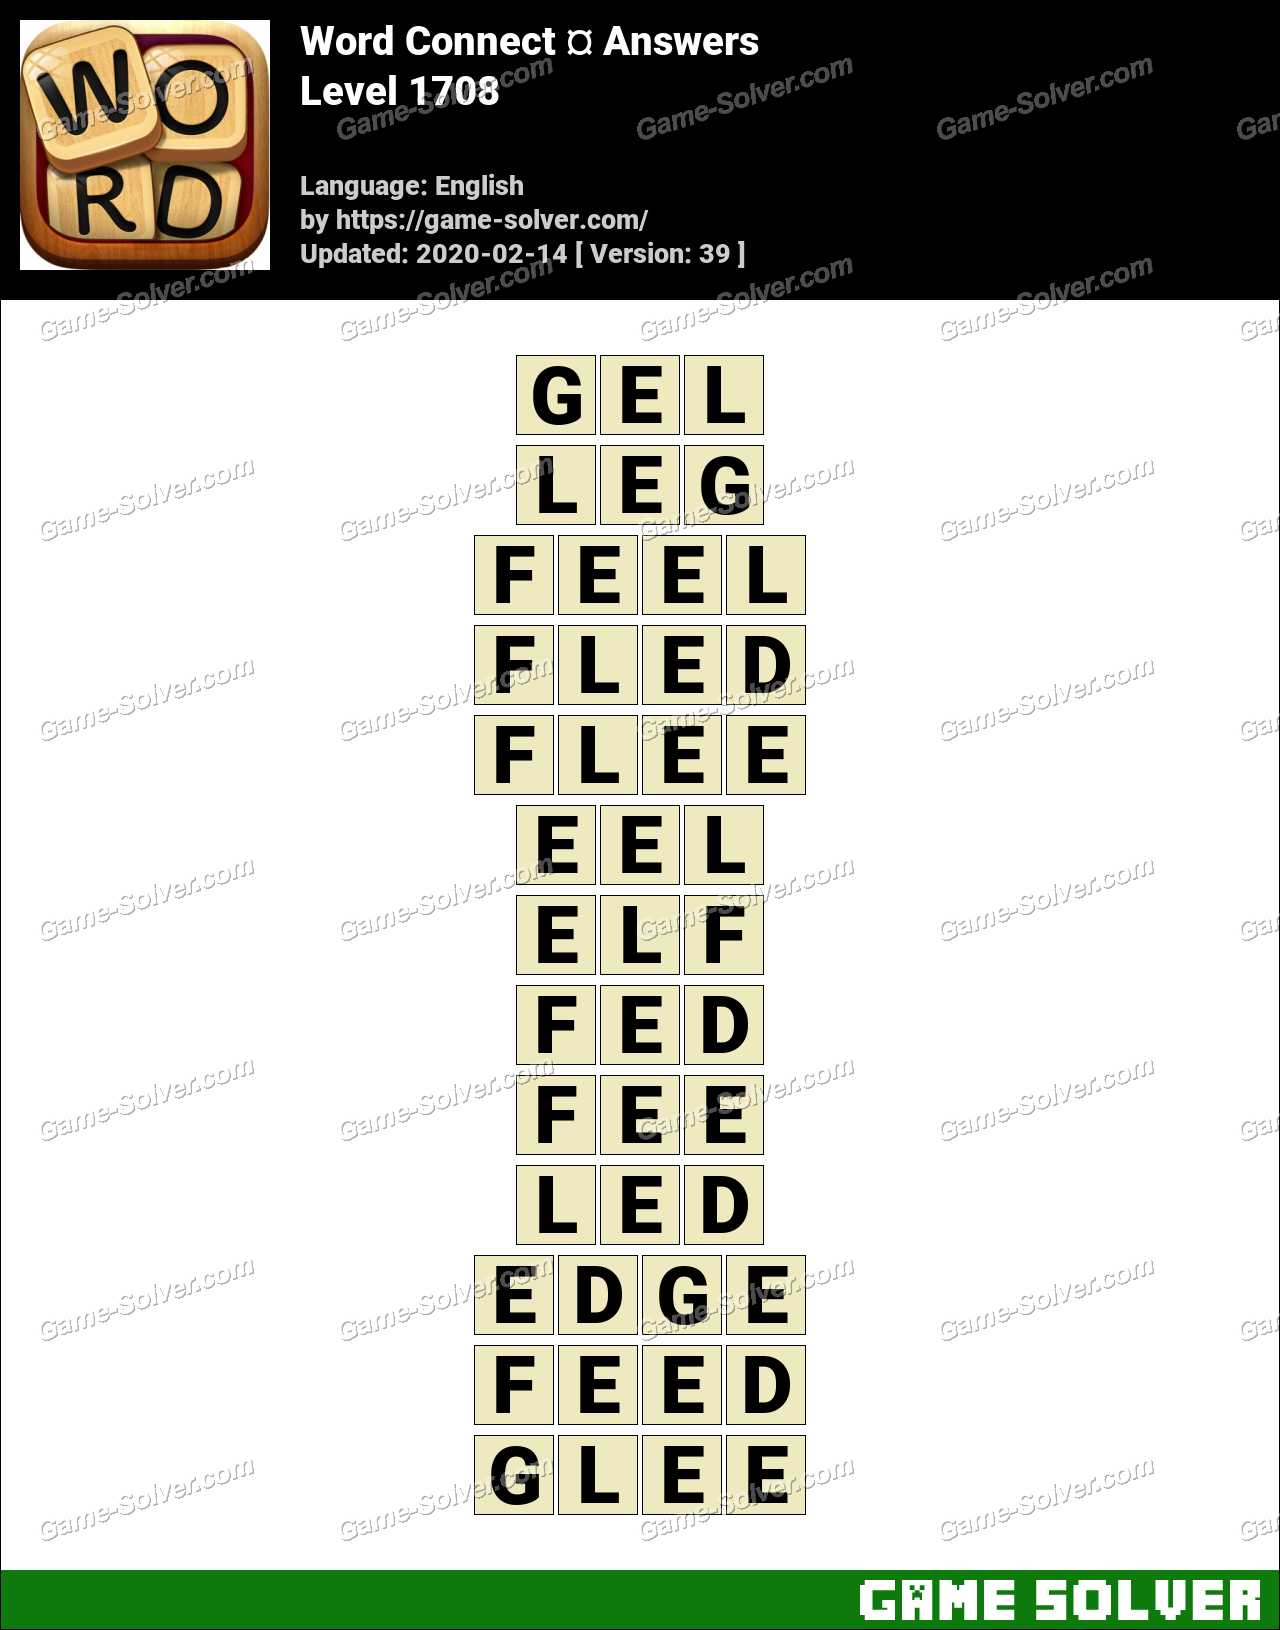 Word Connect Level 1708 Answers